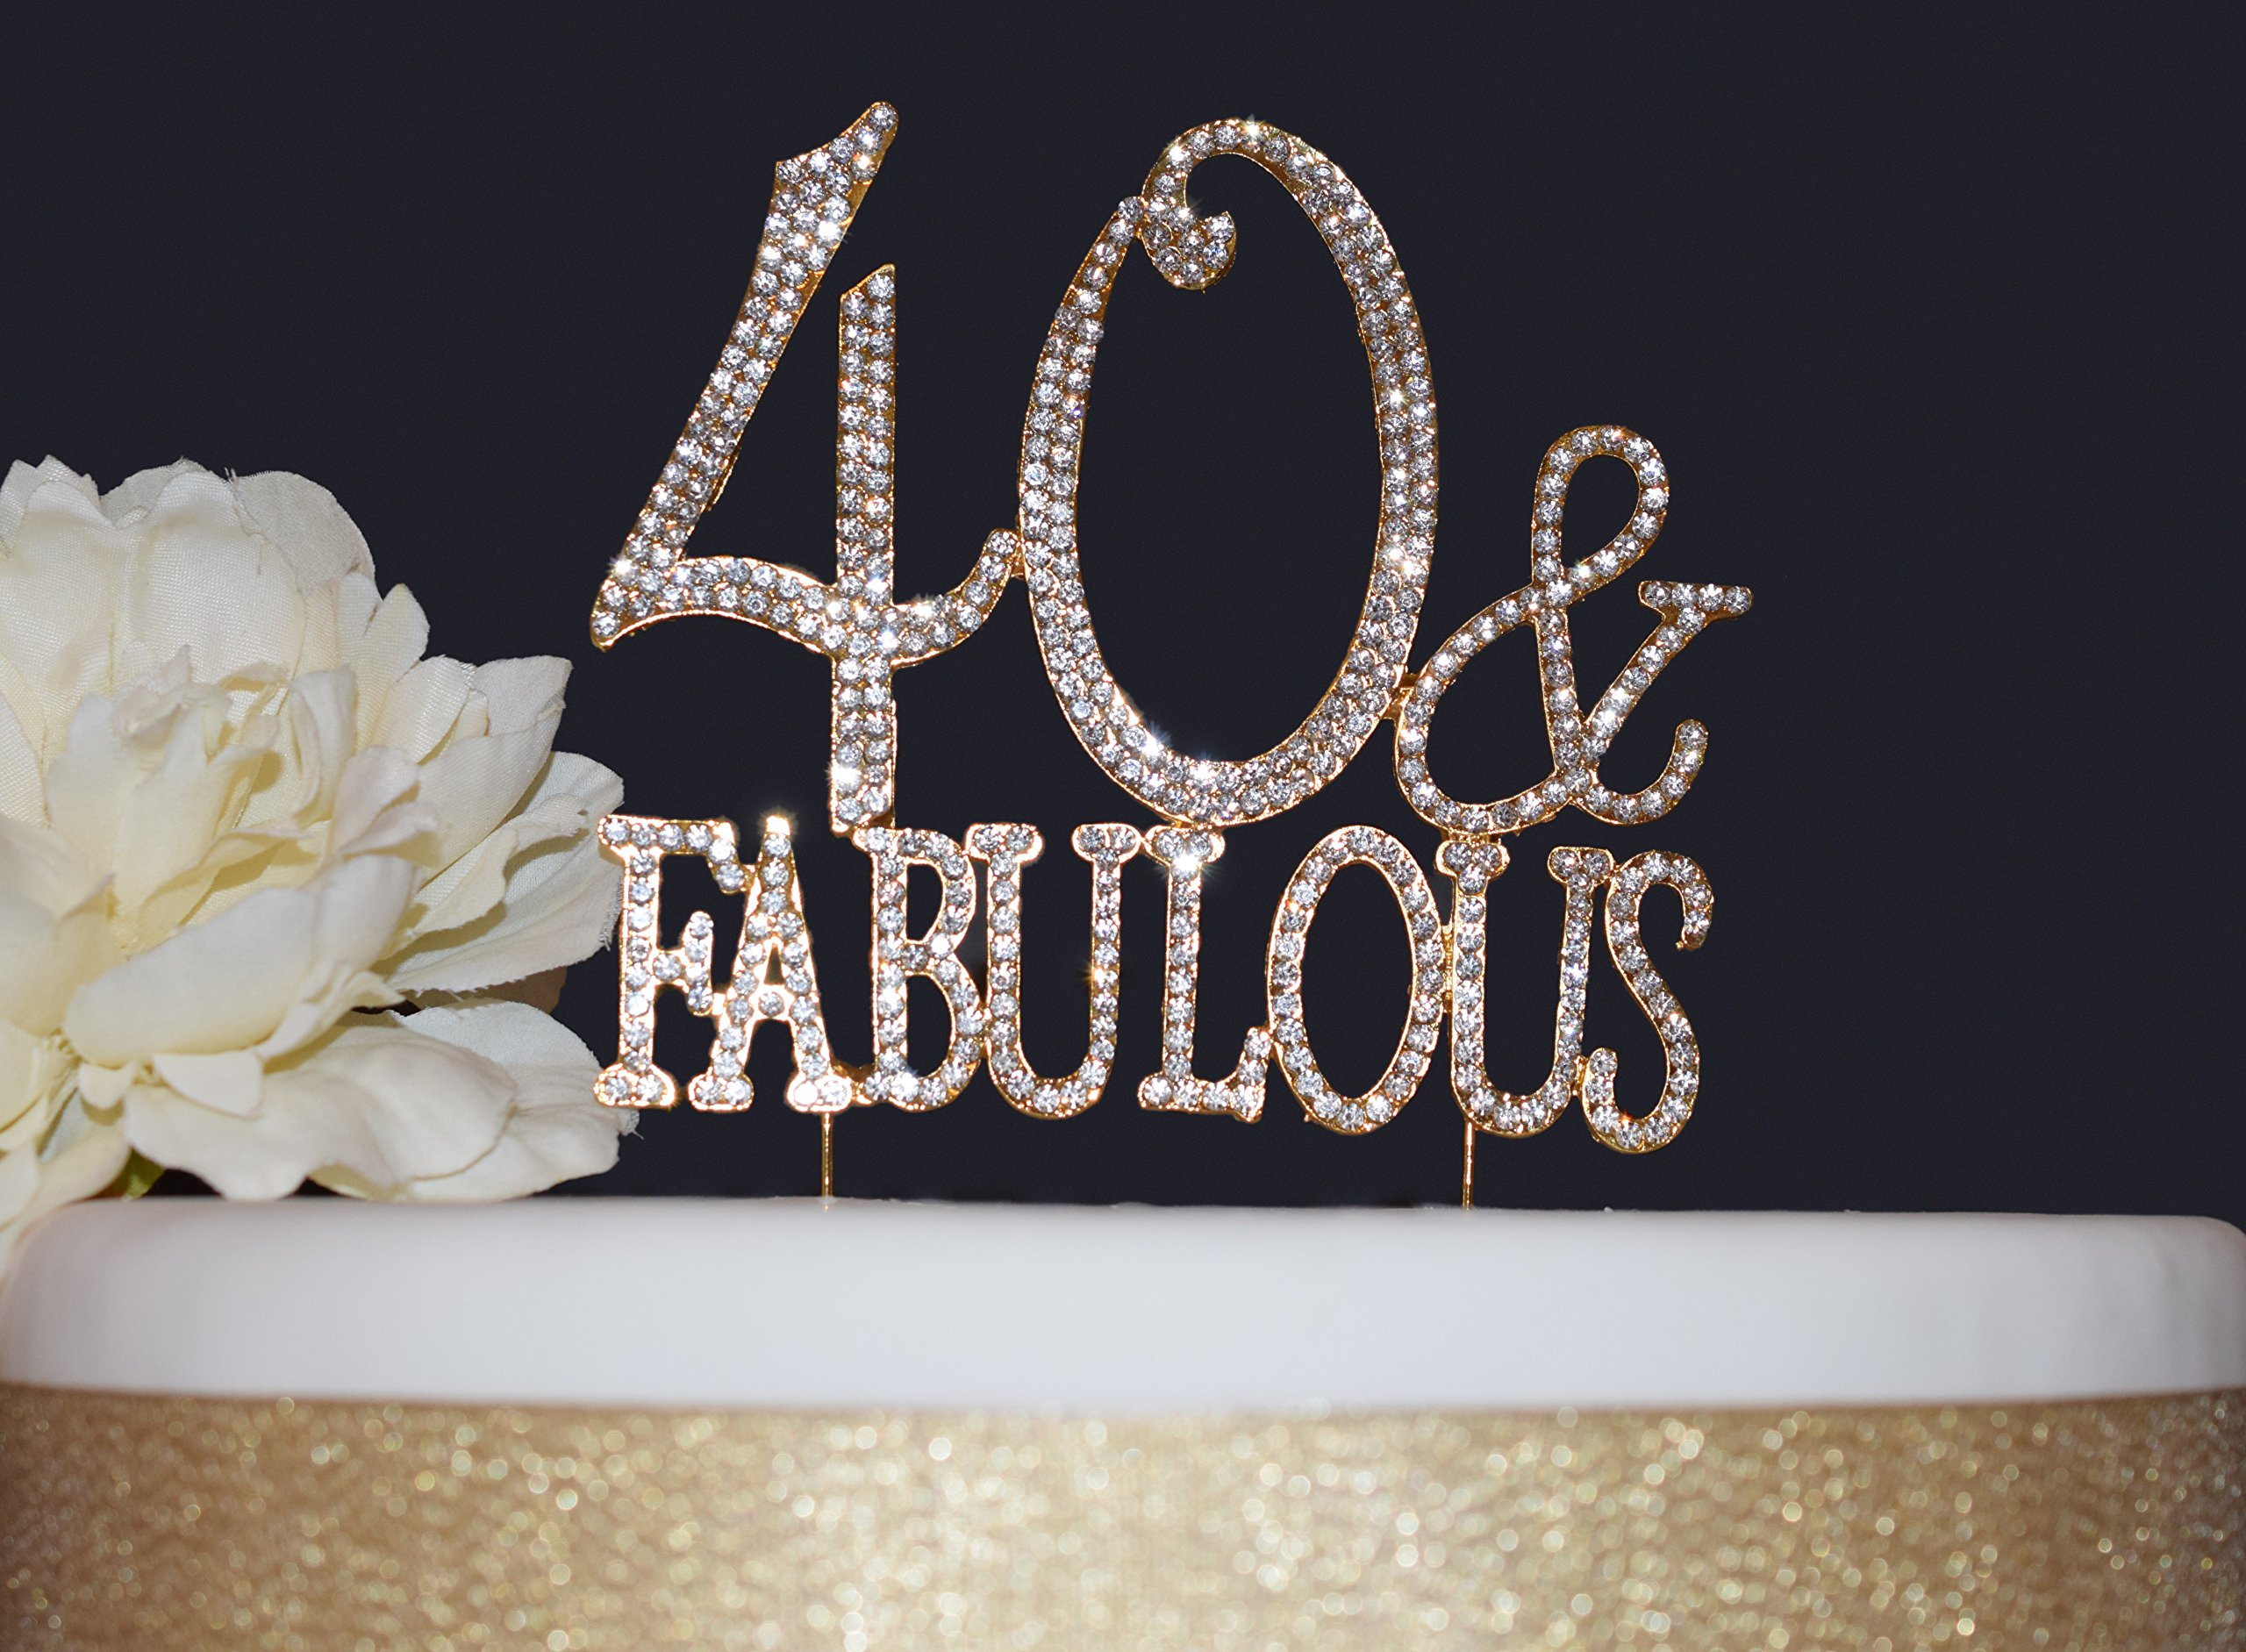 40 and Fabulous GOLD Cake Topper | Premium Sparkly Crystal Rhinestones | 40th Birthday Party Decoration Ideas | Quality Metal Alloy | Perfect Keepsake (40&Fab Gold) by Crystal Creations